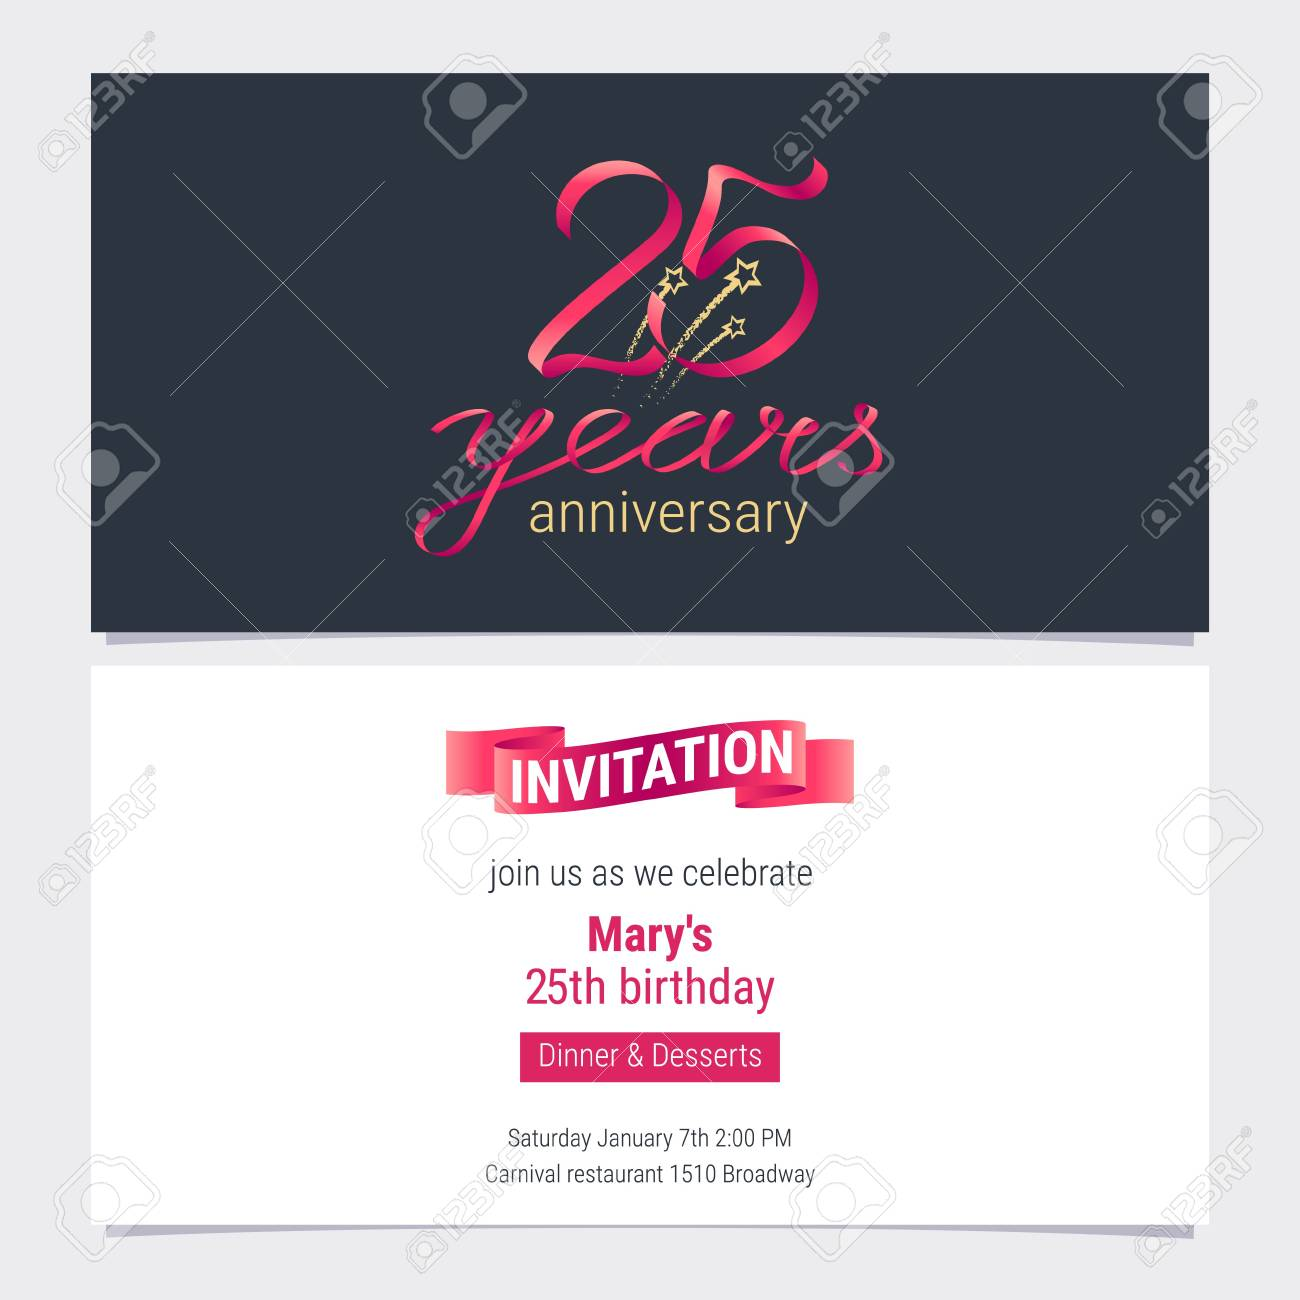 25 Years Anniversary Invite Vector Illustration Graphic Design Element For 25th Birthday Card Party